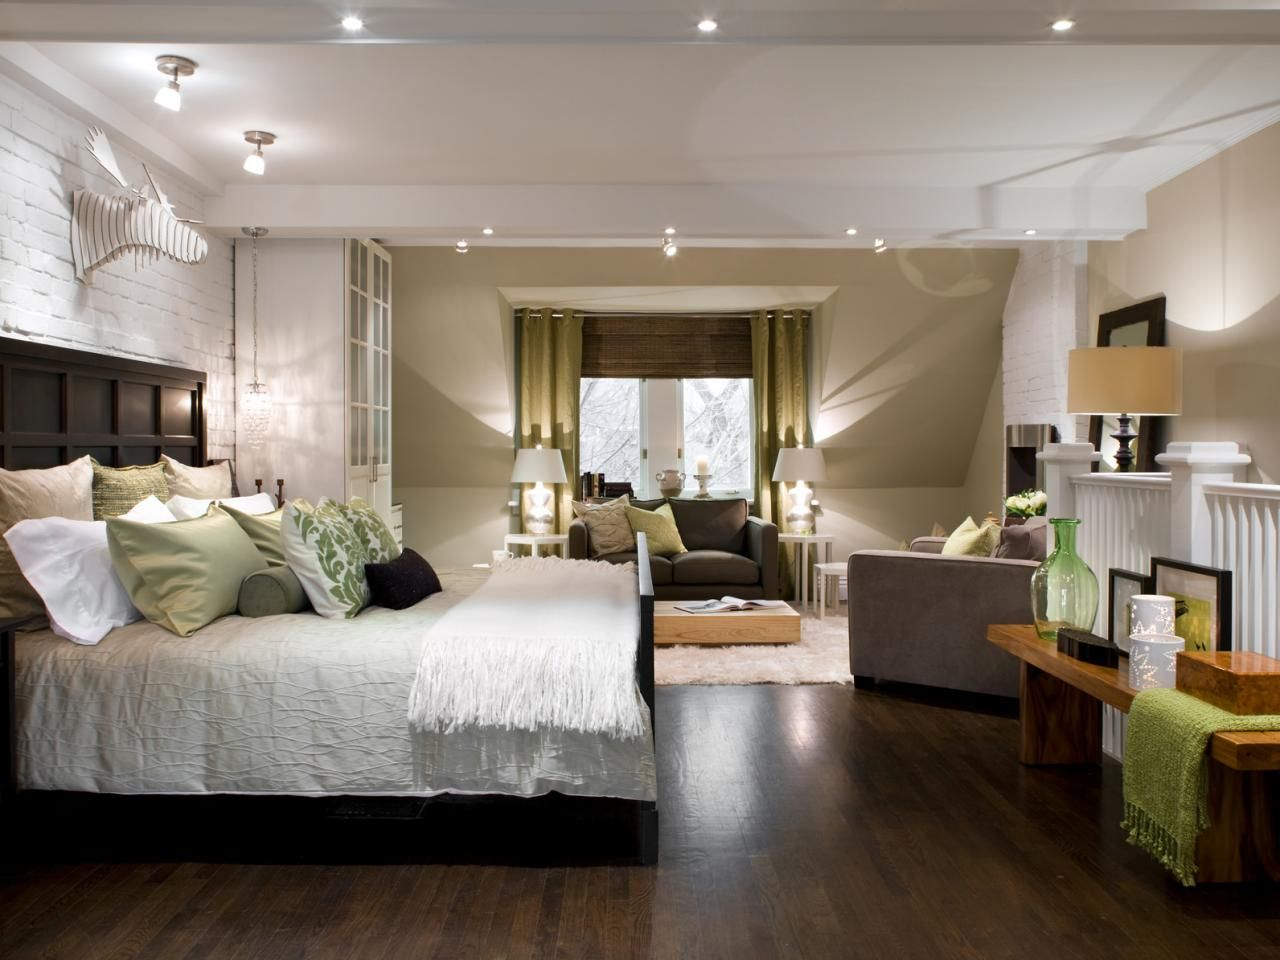 Master Bedroom Retreat Decorating Ideas 10 Bedroom Retreats From Candice Olson  Bedroom Retreat Hgtv And .